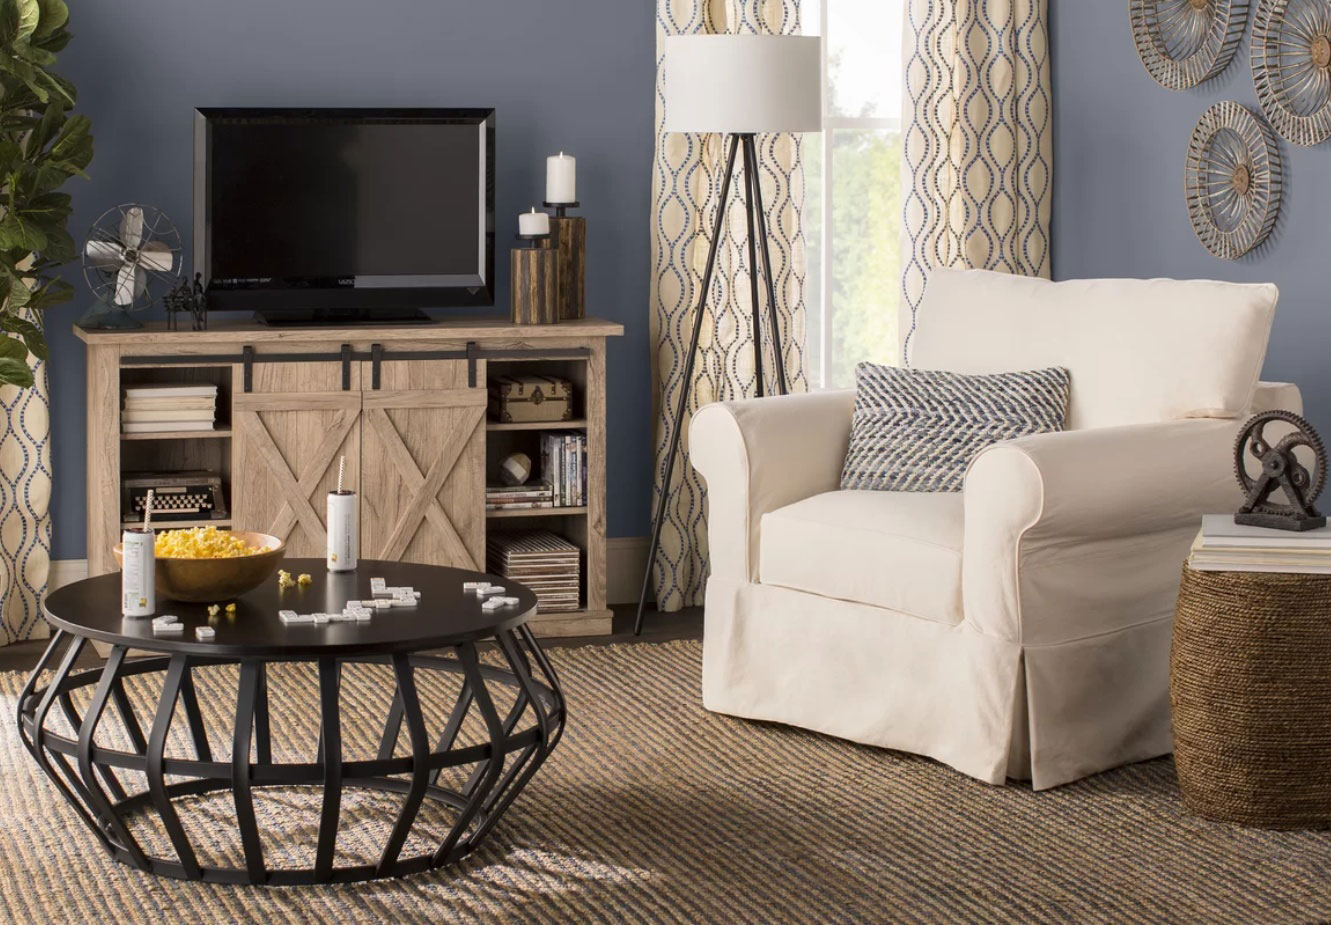 Black Friday deals: Birchlane arm chair and entertainment unit.